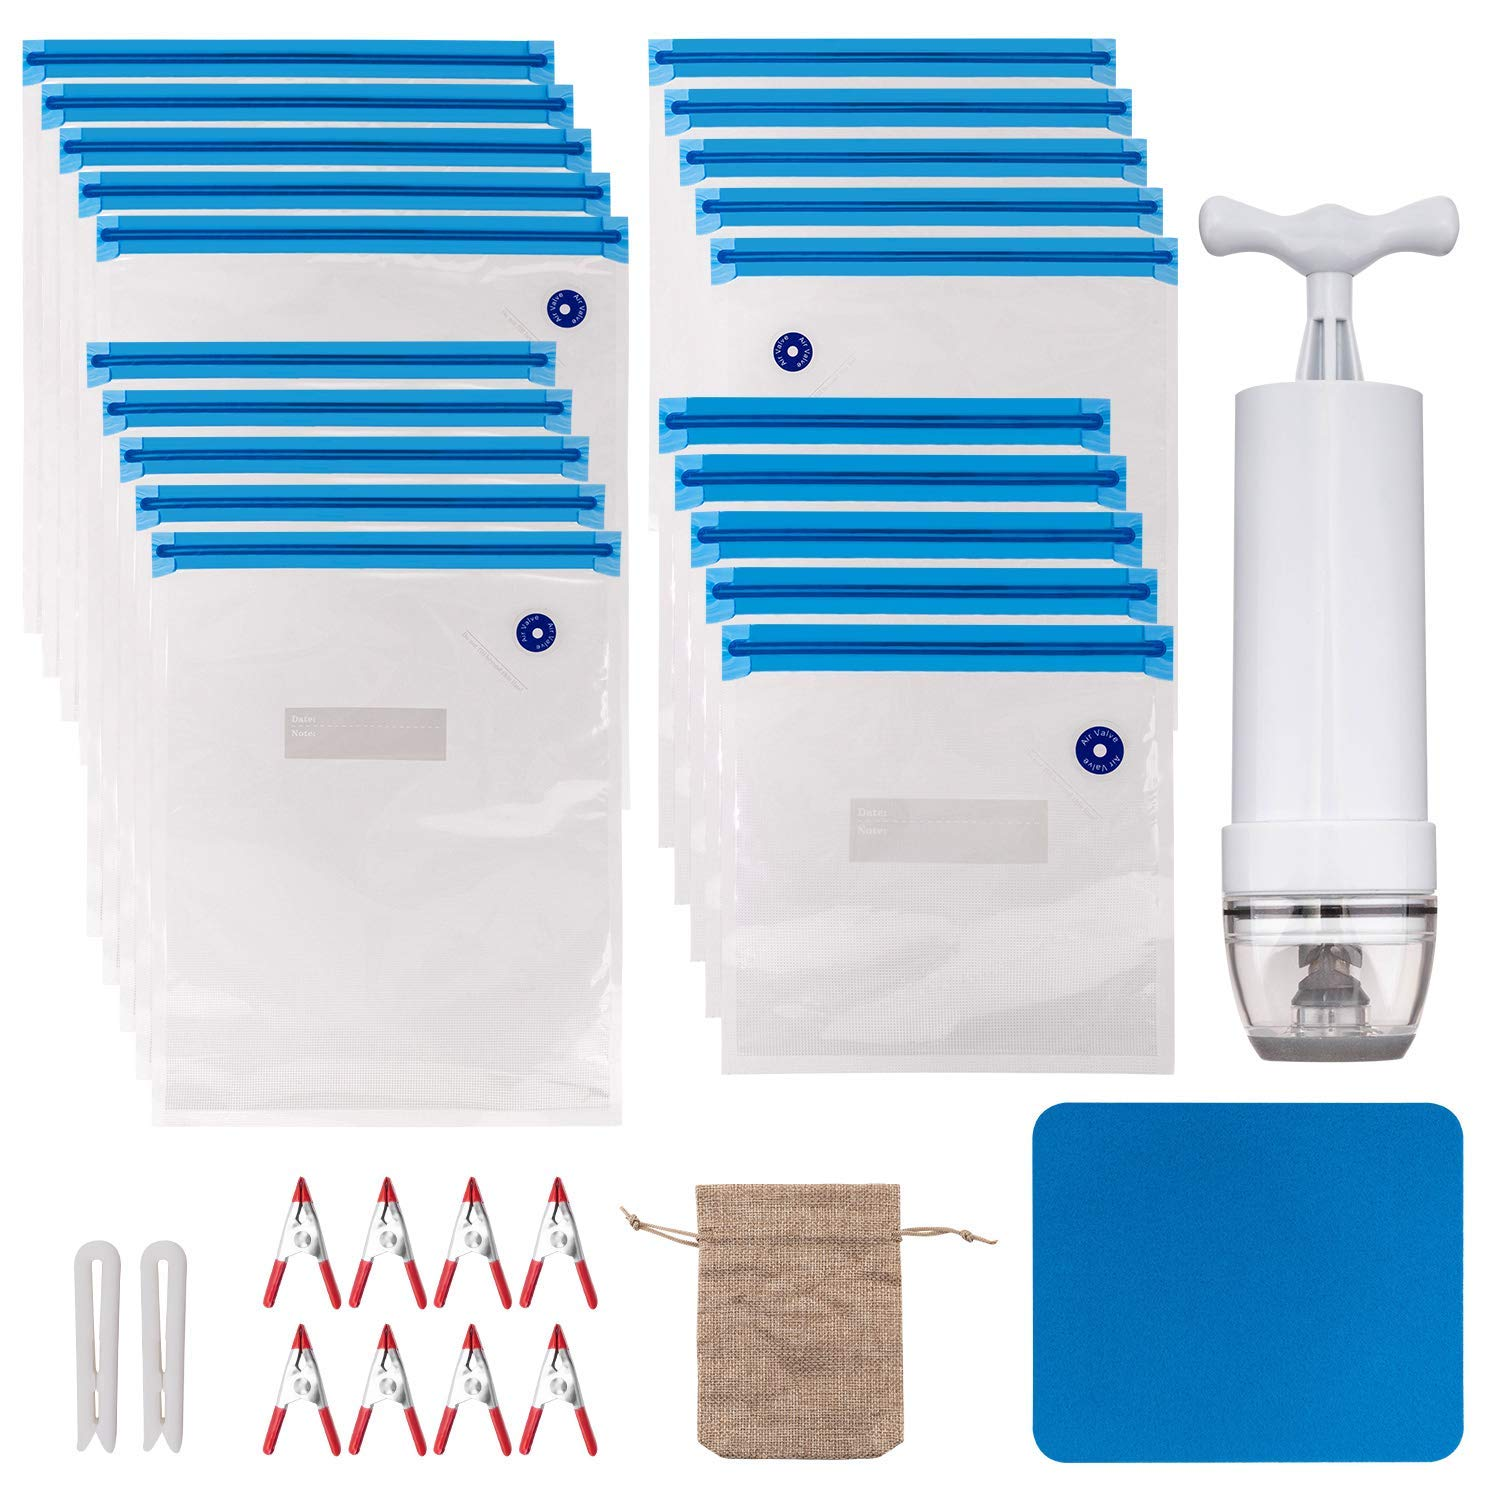 Sous Vide Bags Kit - 20 Reuseble Food Vacuum Sealed Bags for Sous Vide Cooking and Food Storage with 1 Hand Pump, 2 Bag Sealing Clips and 8 Sous Vide Clips,1 Cushion and 1 Storage Bag(33 Pcs)